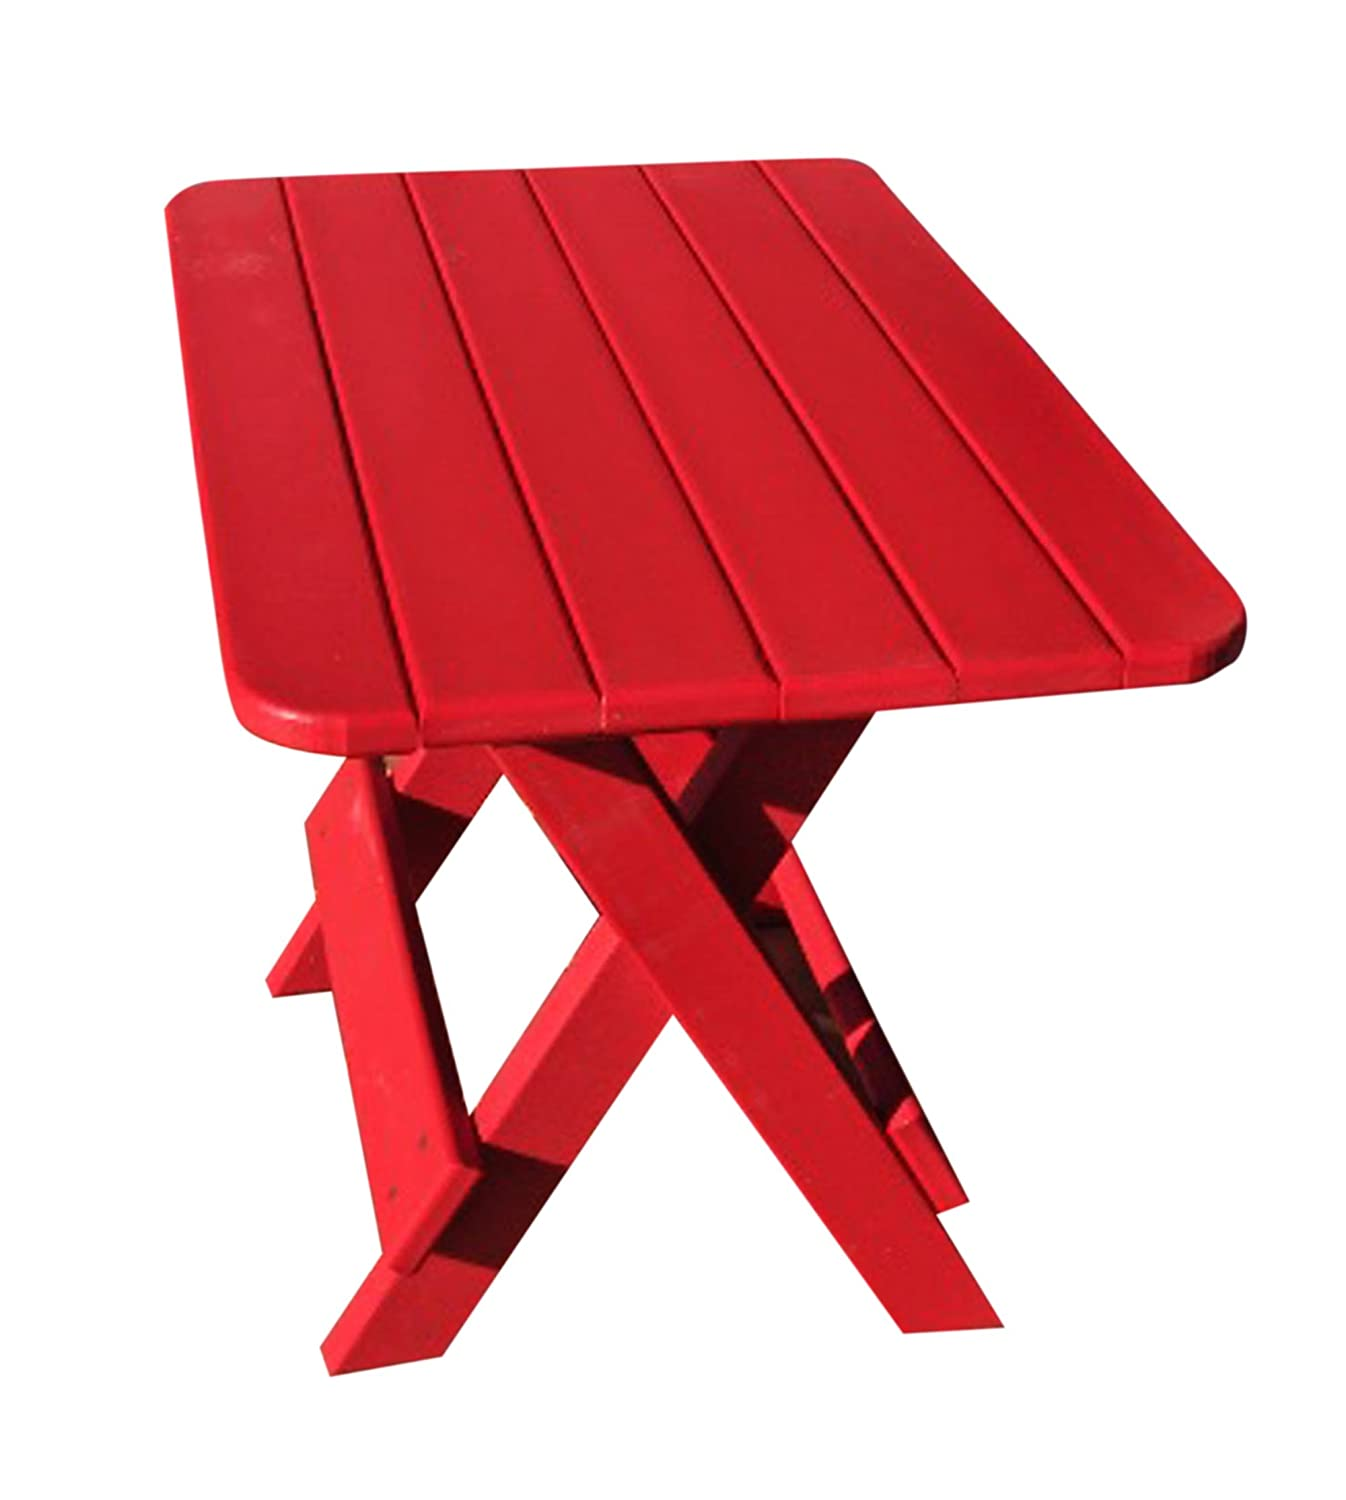 Amazon.com : Phat Tommy Recycled Poly Resin Folding Side Table   Durable U0026  Eco Friendly Patio Furniture Matches Adirondack : Camping Tables : Patio,  ...